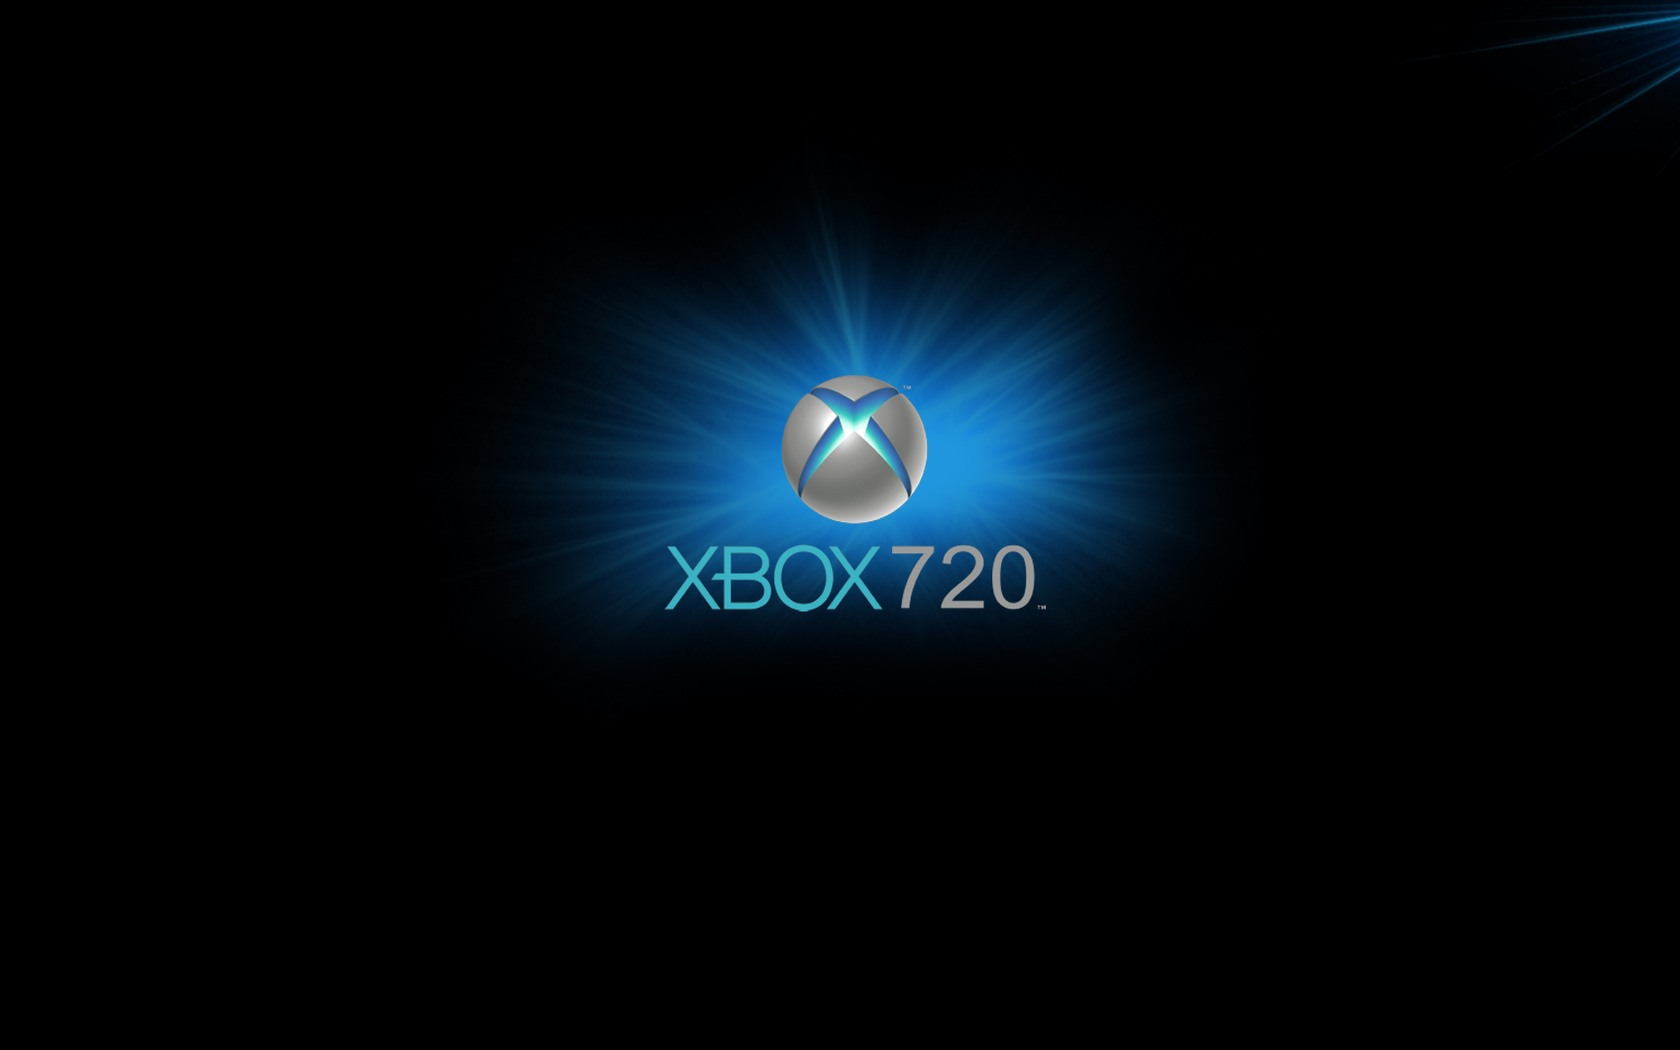 5 Games We Want on the Xbox 720 (That Aren't Halo or Gears of War)